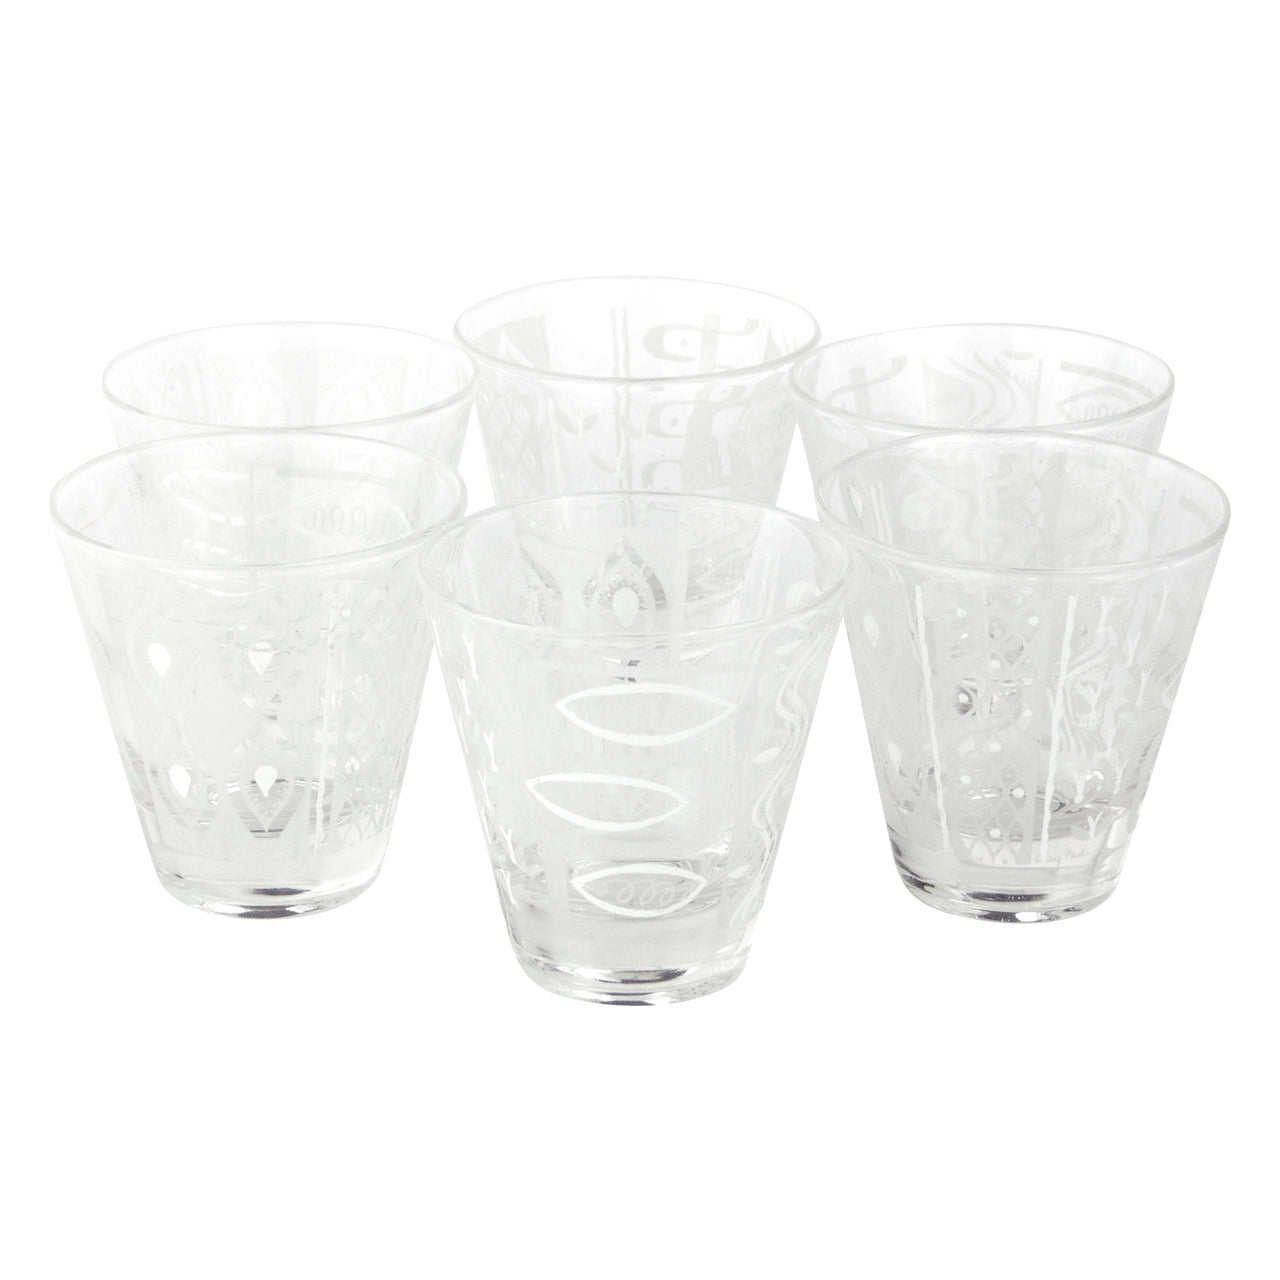 Gay Fad Mod Single Old Fashioned Glasses